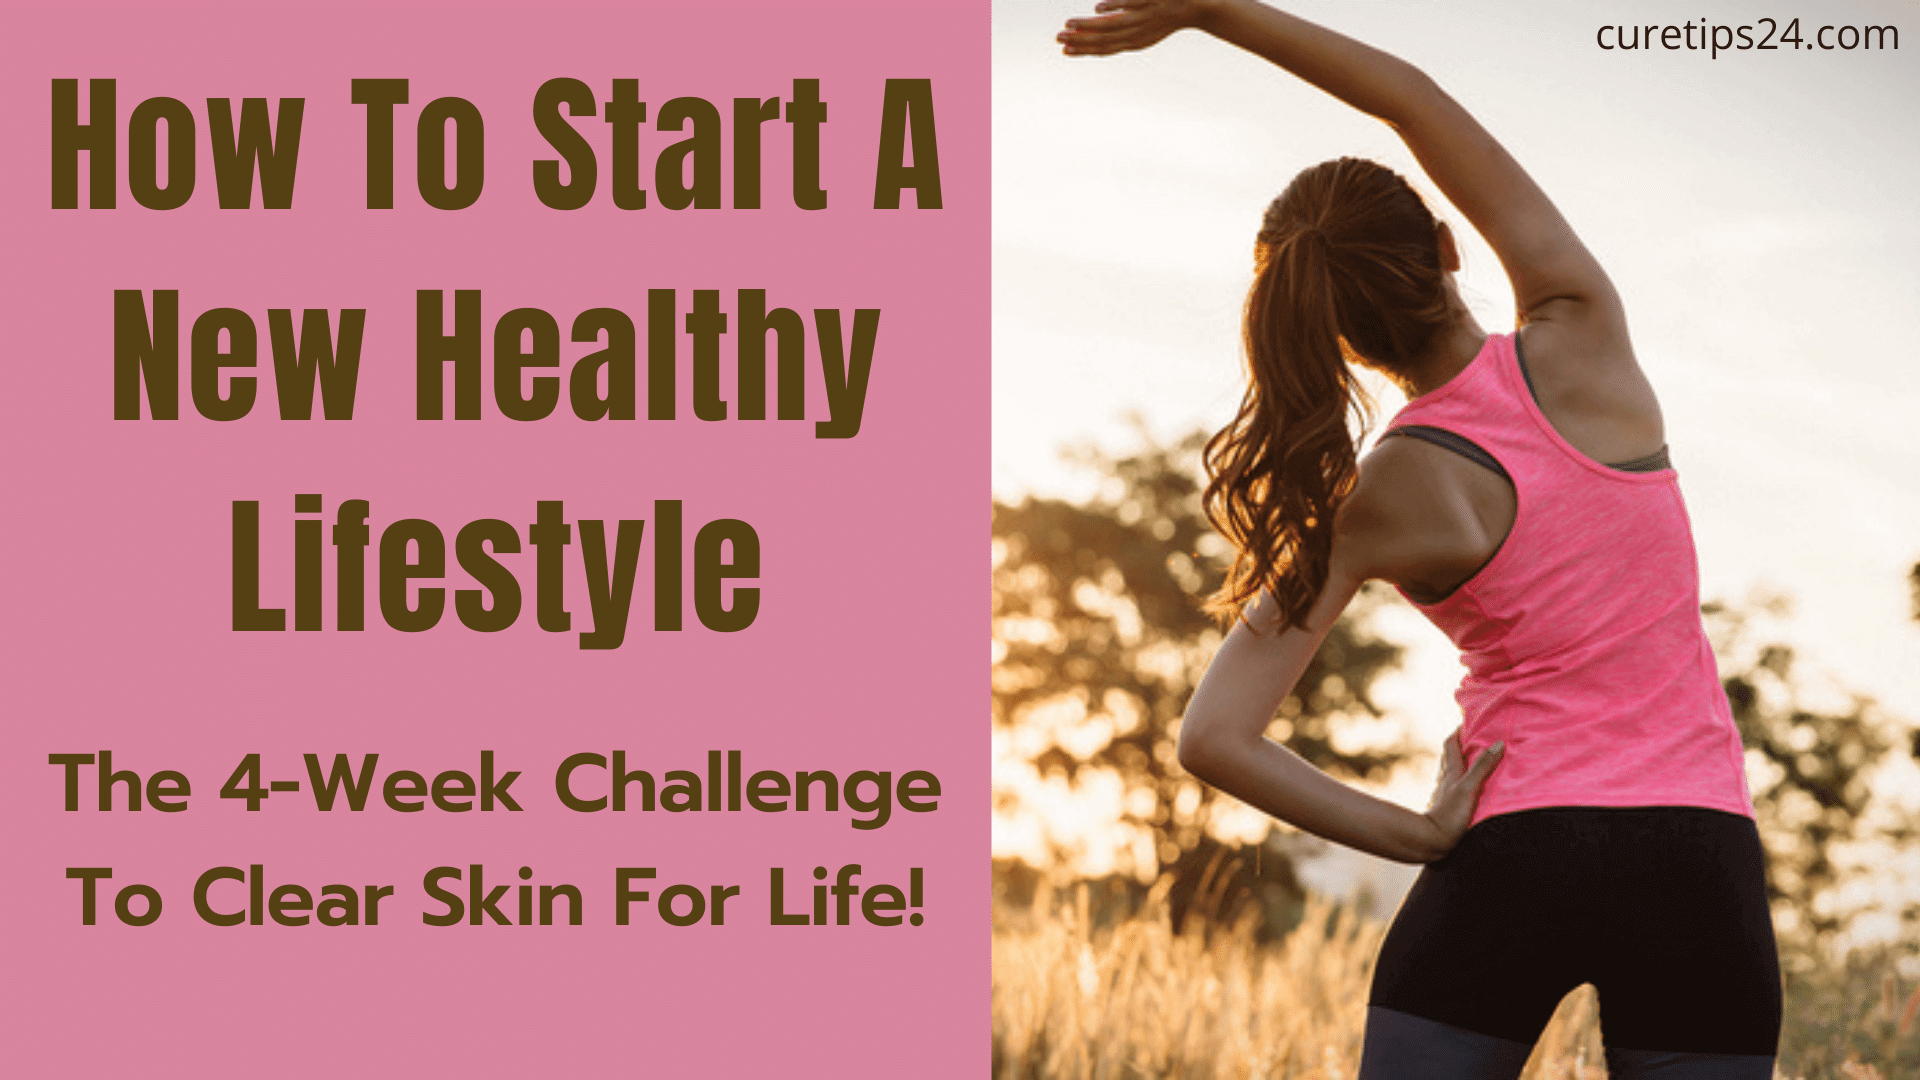 How To Start A New Healthy Lifestyle